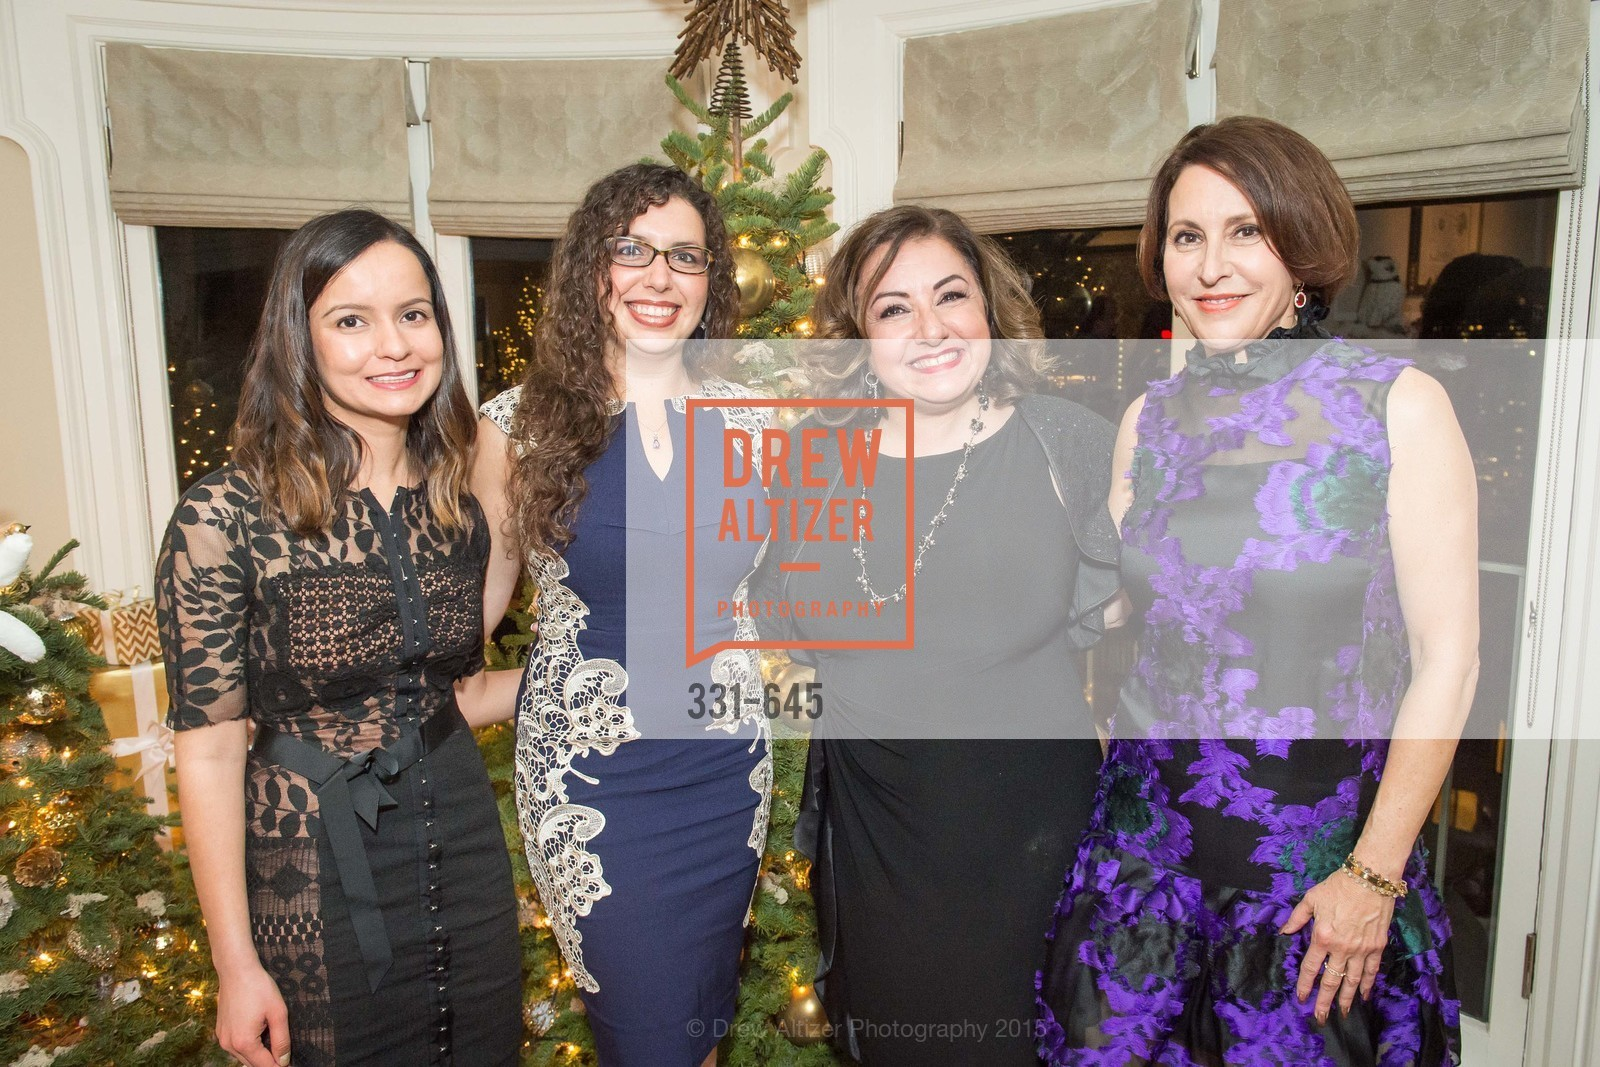 Sargam Atherton, Shanna Atherton, Tracy Atherton, Susan Atherton, Atherton Holiday Party, Private Residence, December 12th, 2015,Drew Altizer, Drew Altizer Photography, full-service event agency, private events, San Francisco photographer, photographer California